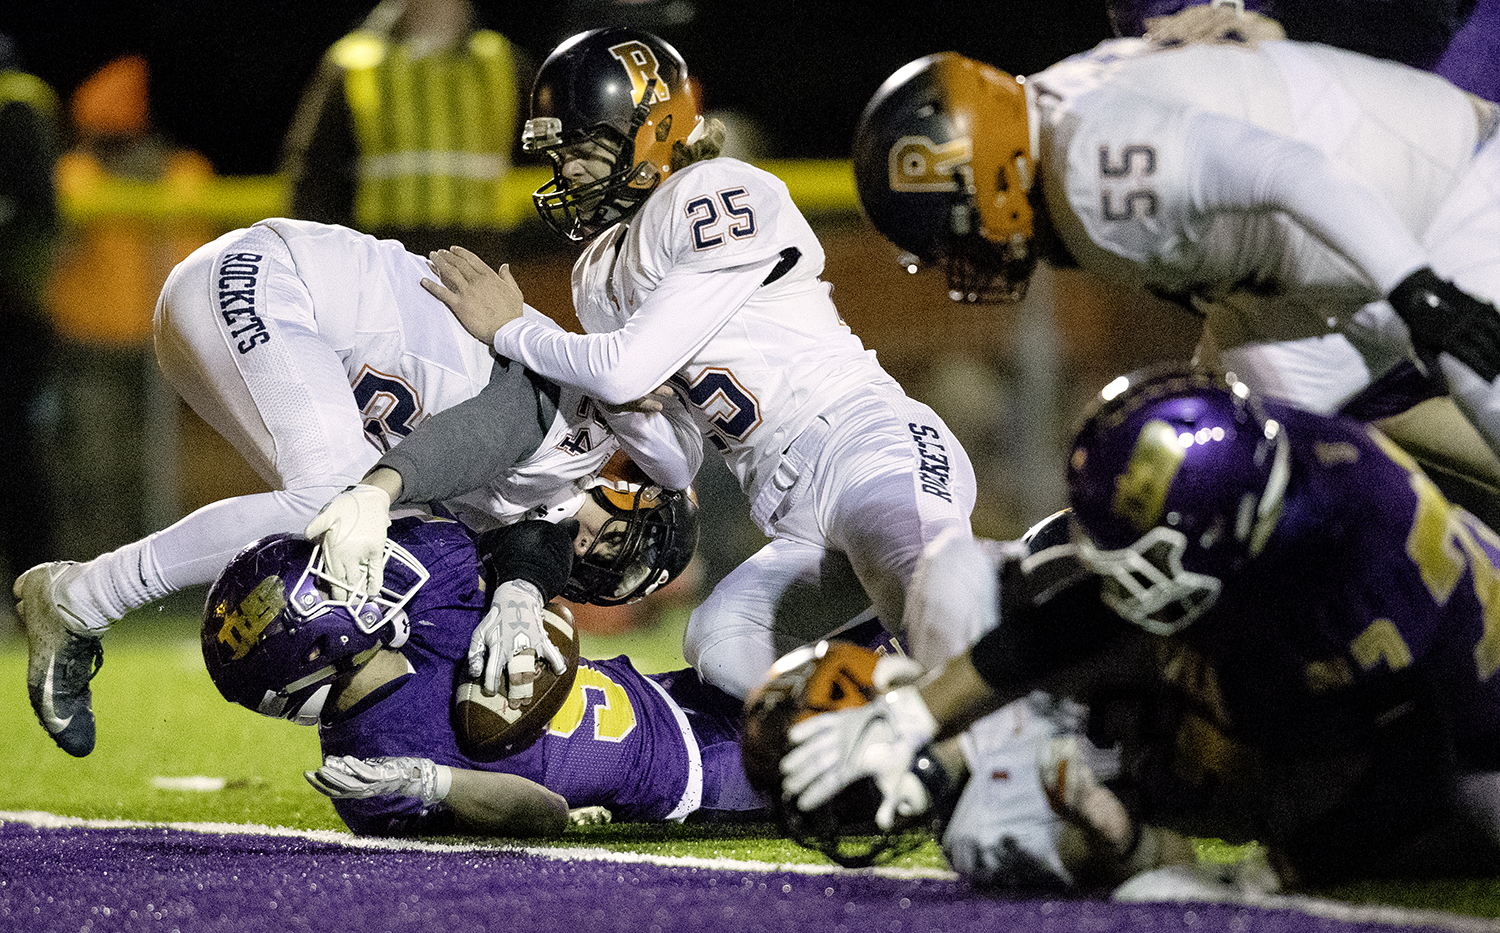 Rochester defenders stop Taylorville's Riley Buschon short of the endzone during the Class 4A quarterfinals in Taylorville Saturday, Nov. 10, 2018. [Ted Schurter/The State Journal-Register]